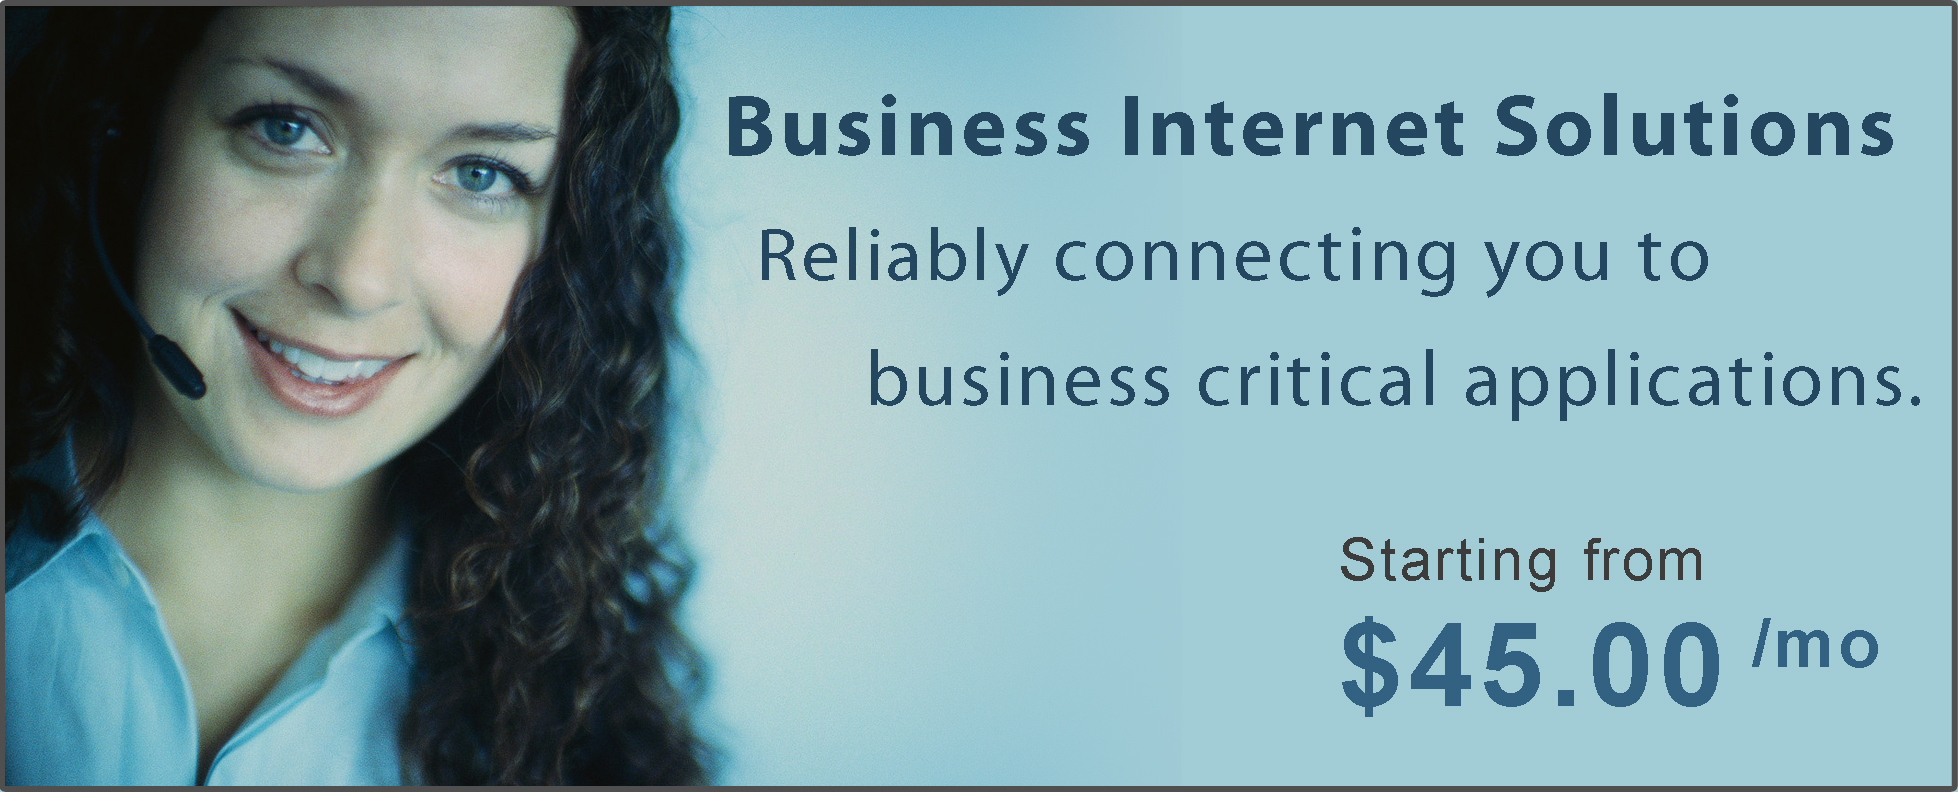 Business Internet Solutions Banner